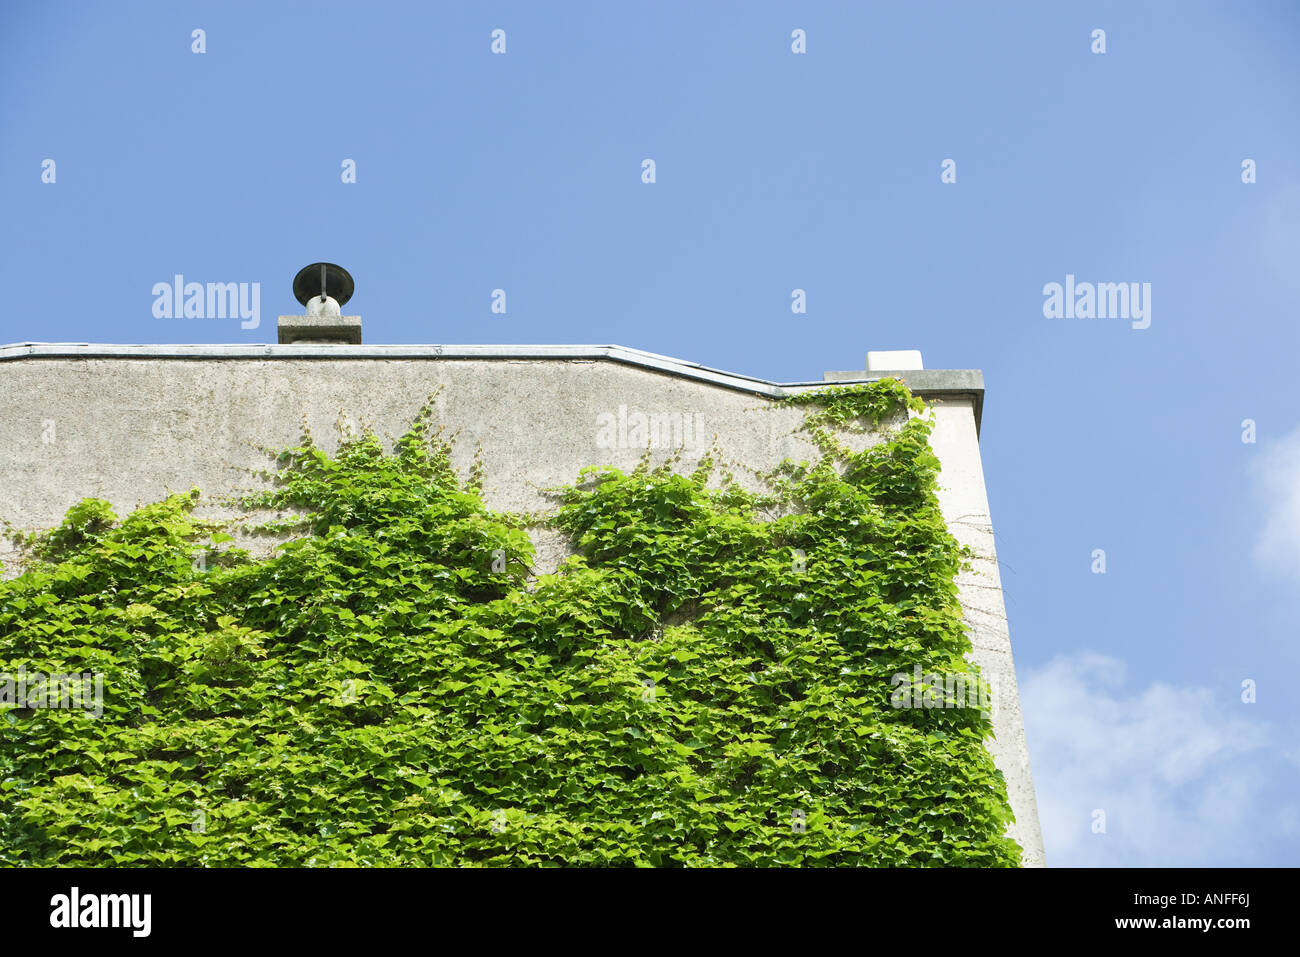 Vine growing on side of building Stock Photo